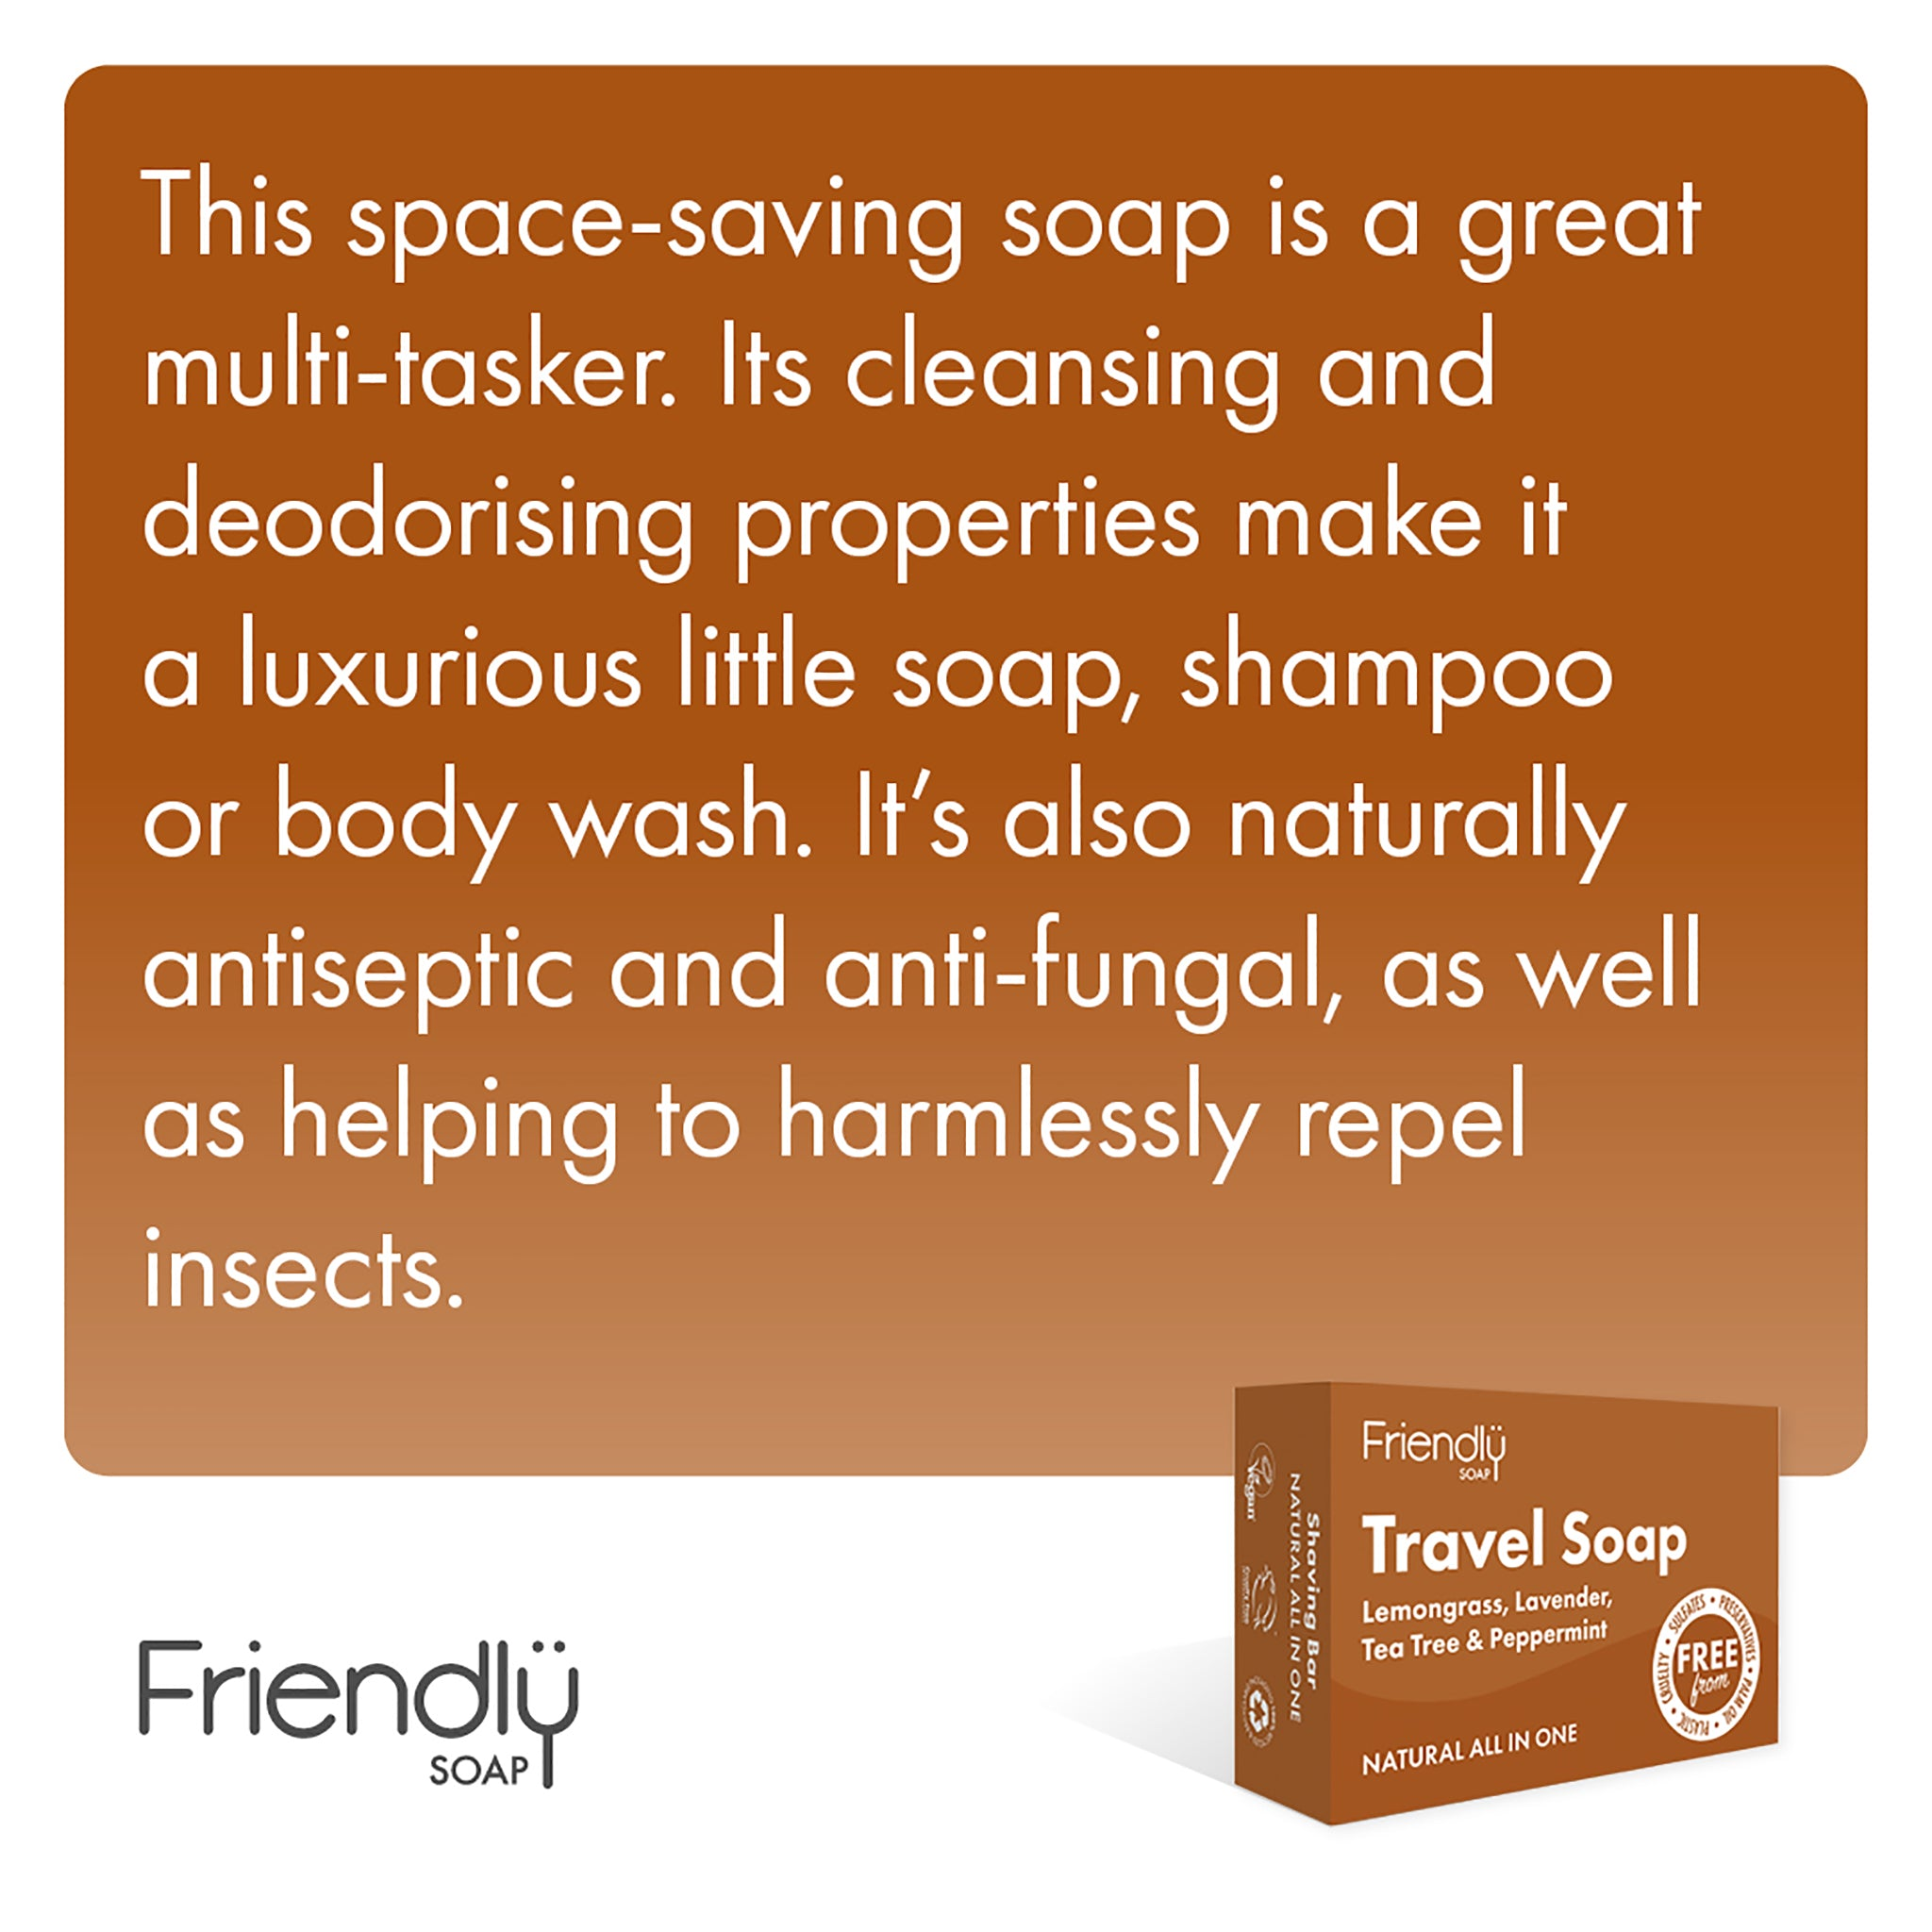 Travel Soap - Hair, Body & Laundry